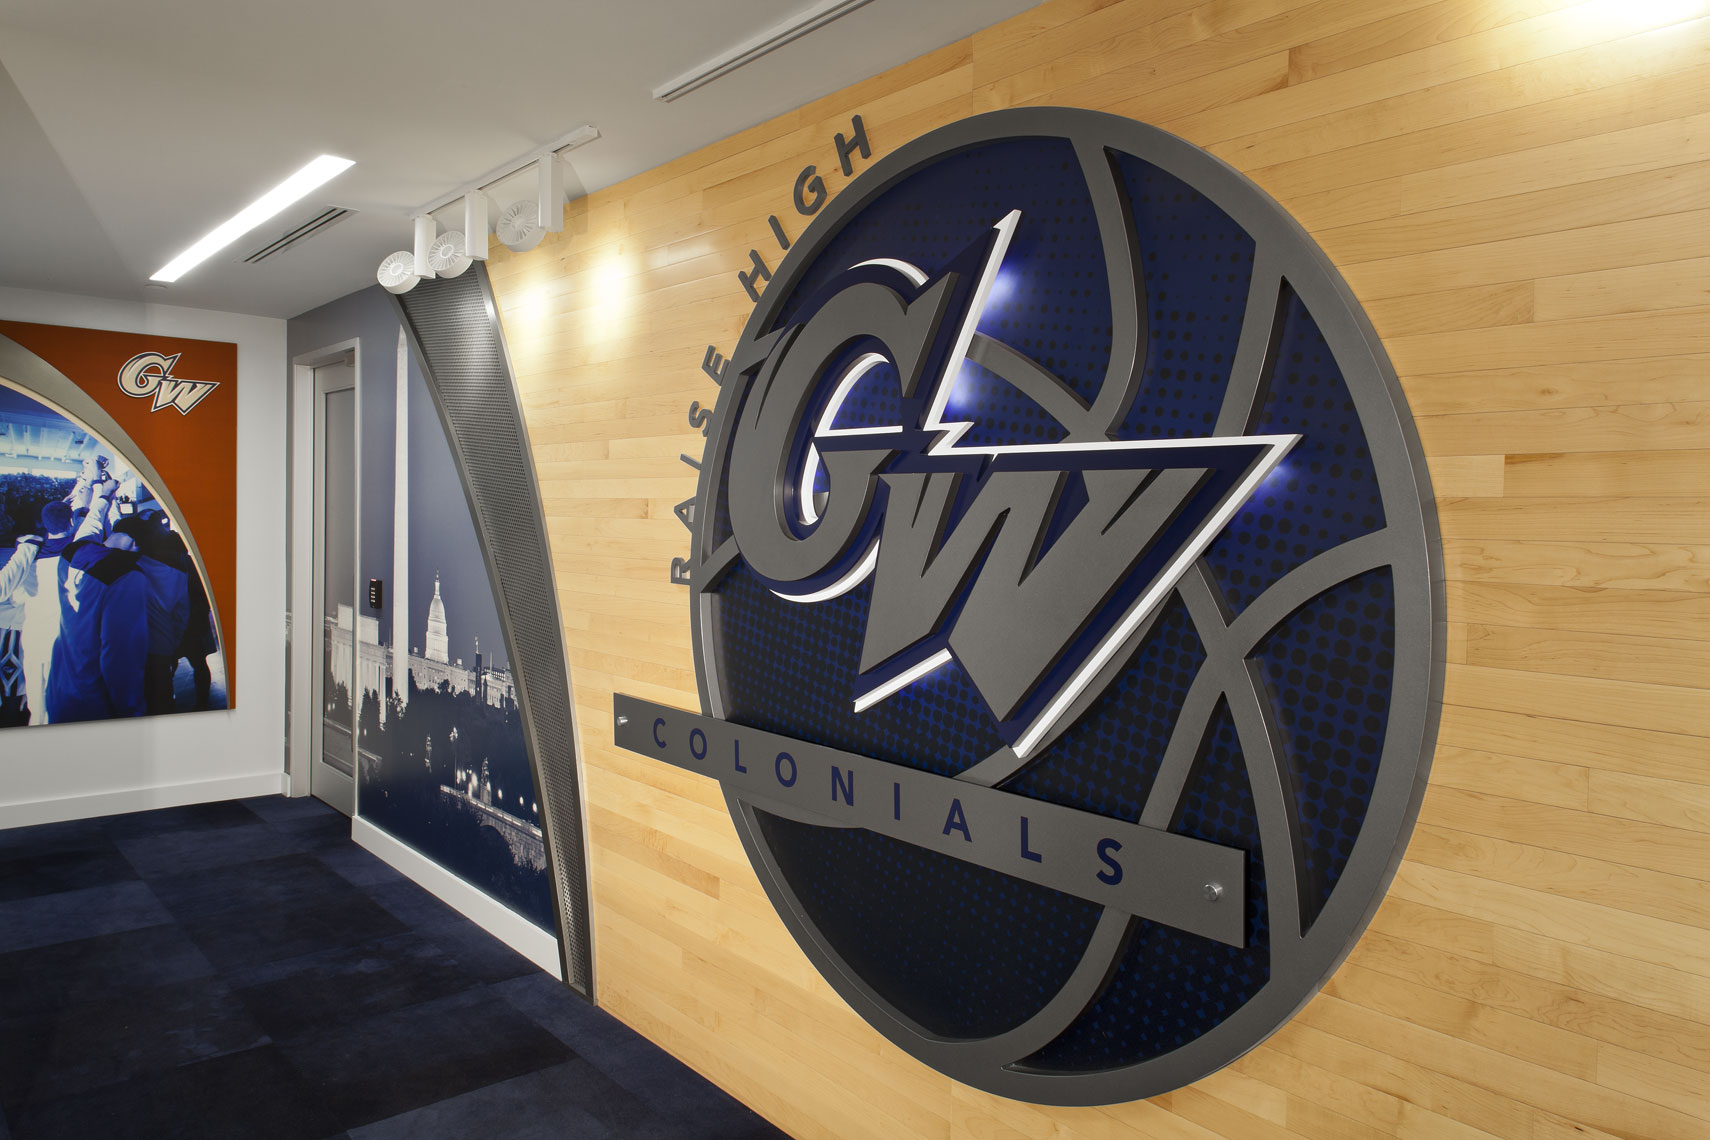 GW UNIV SMITH CENTER LOWER LEVEL RENOVATION